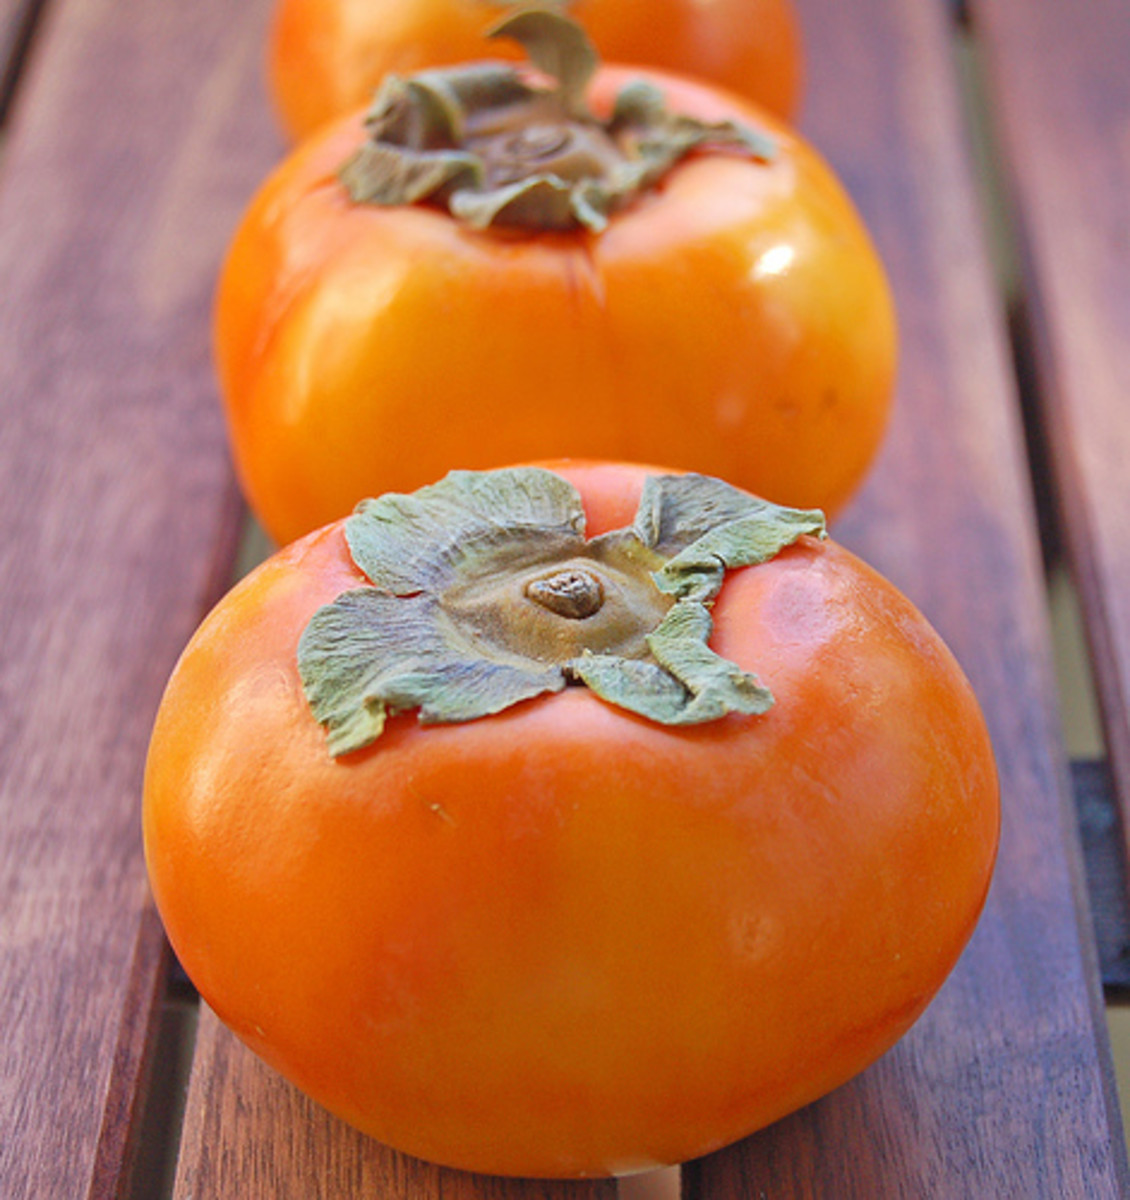 Persimmon Bread Recipe & Facts About Persimmons